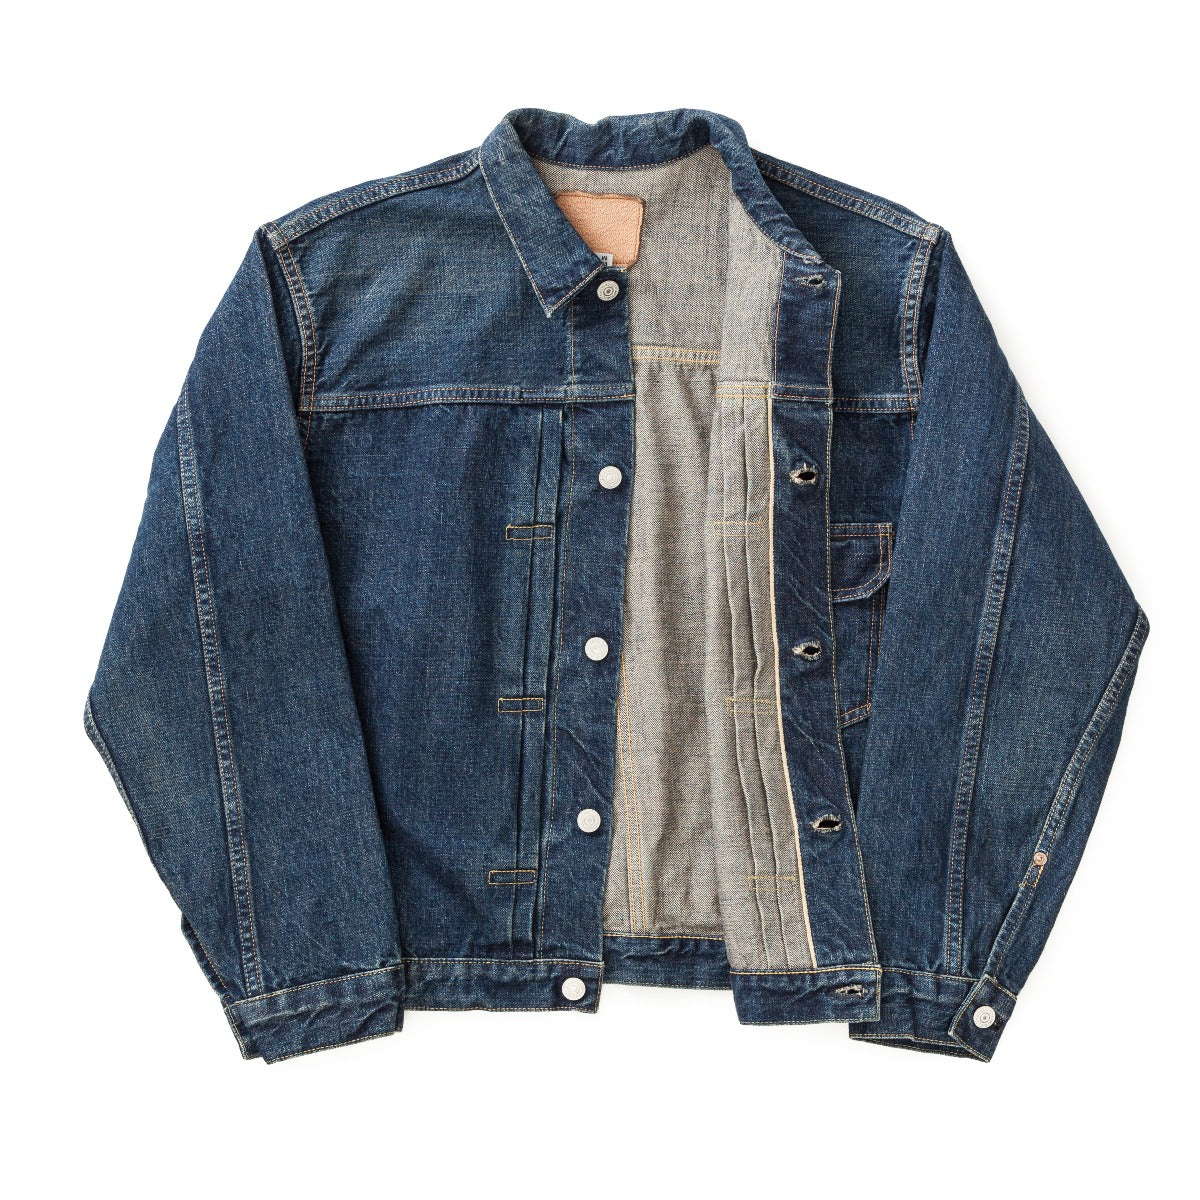 Pleated Front Blouse Denim Jacket One Year Wash